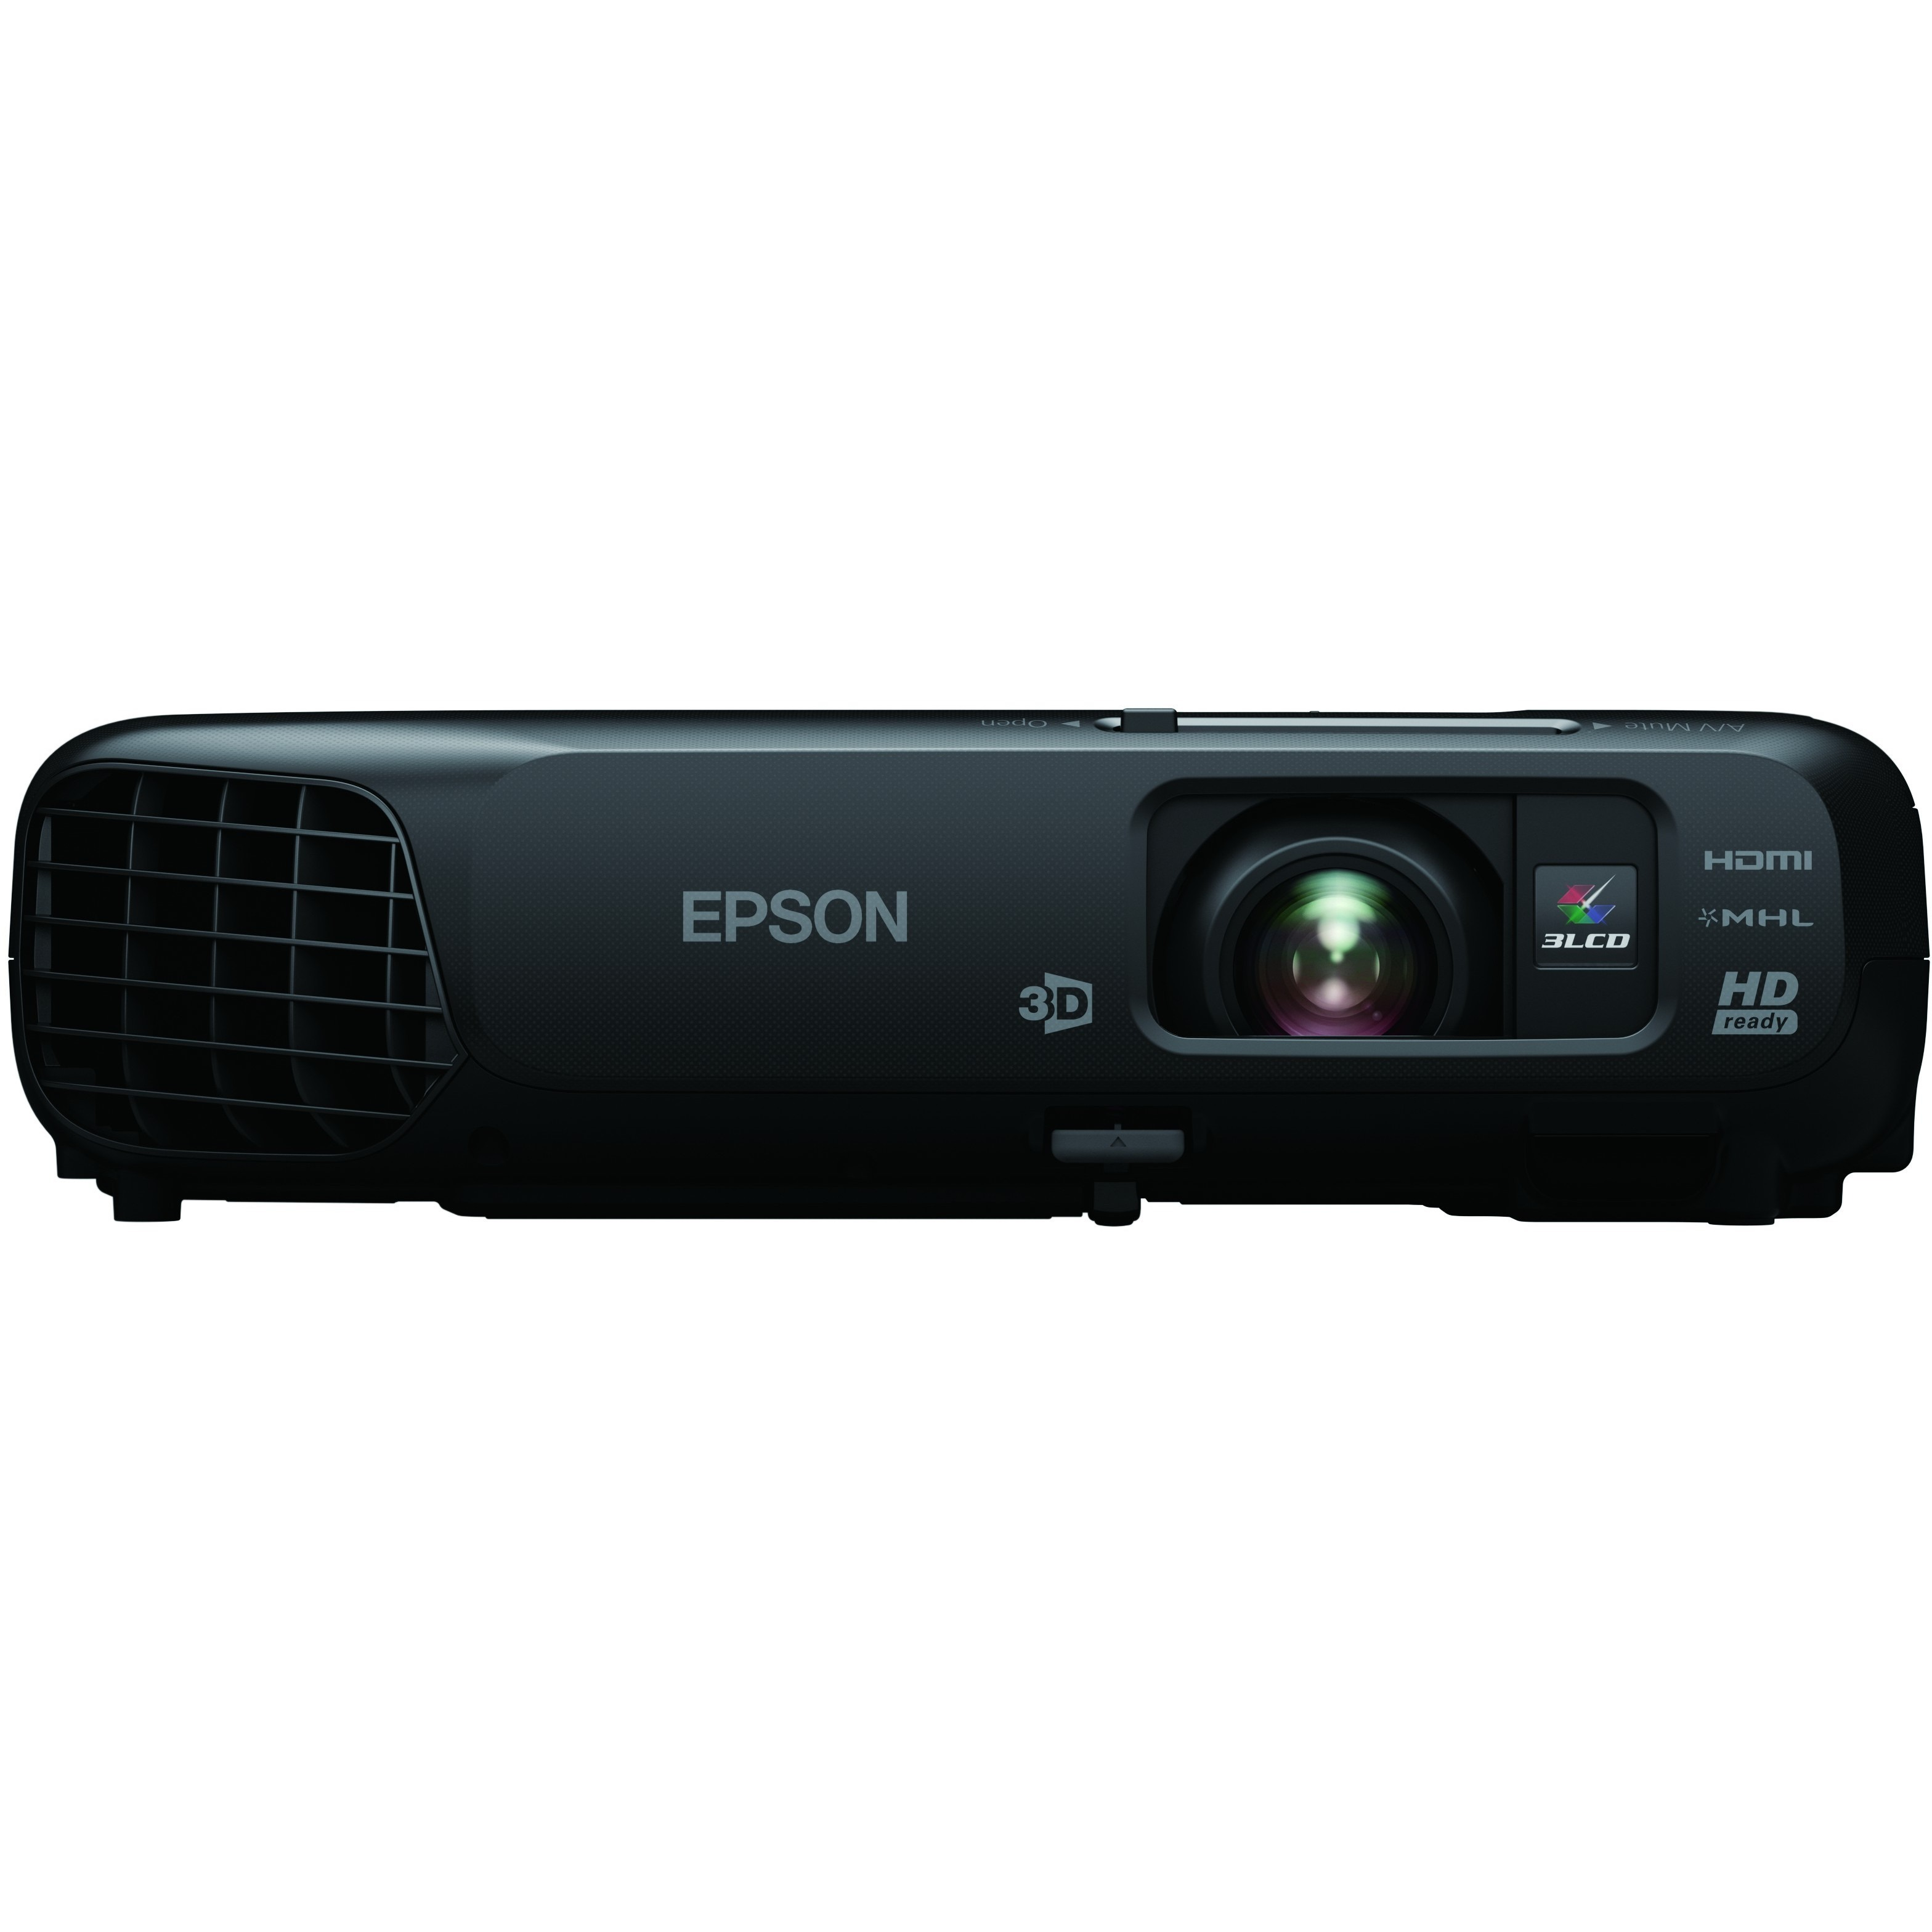 Epson EH-TW570 3D Ready LCD Projector - 720p - HDTV - 16:10